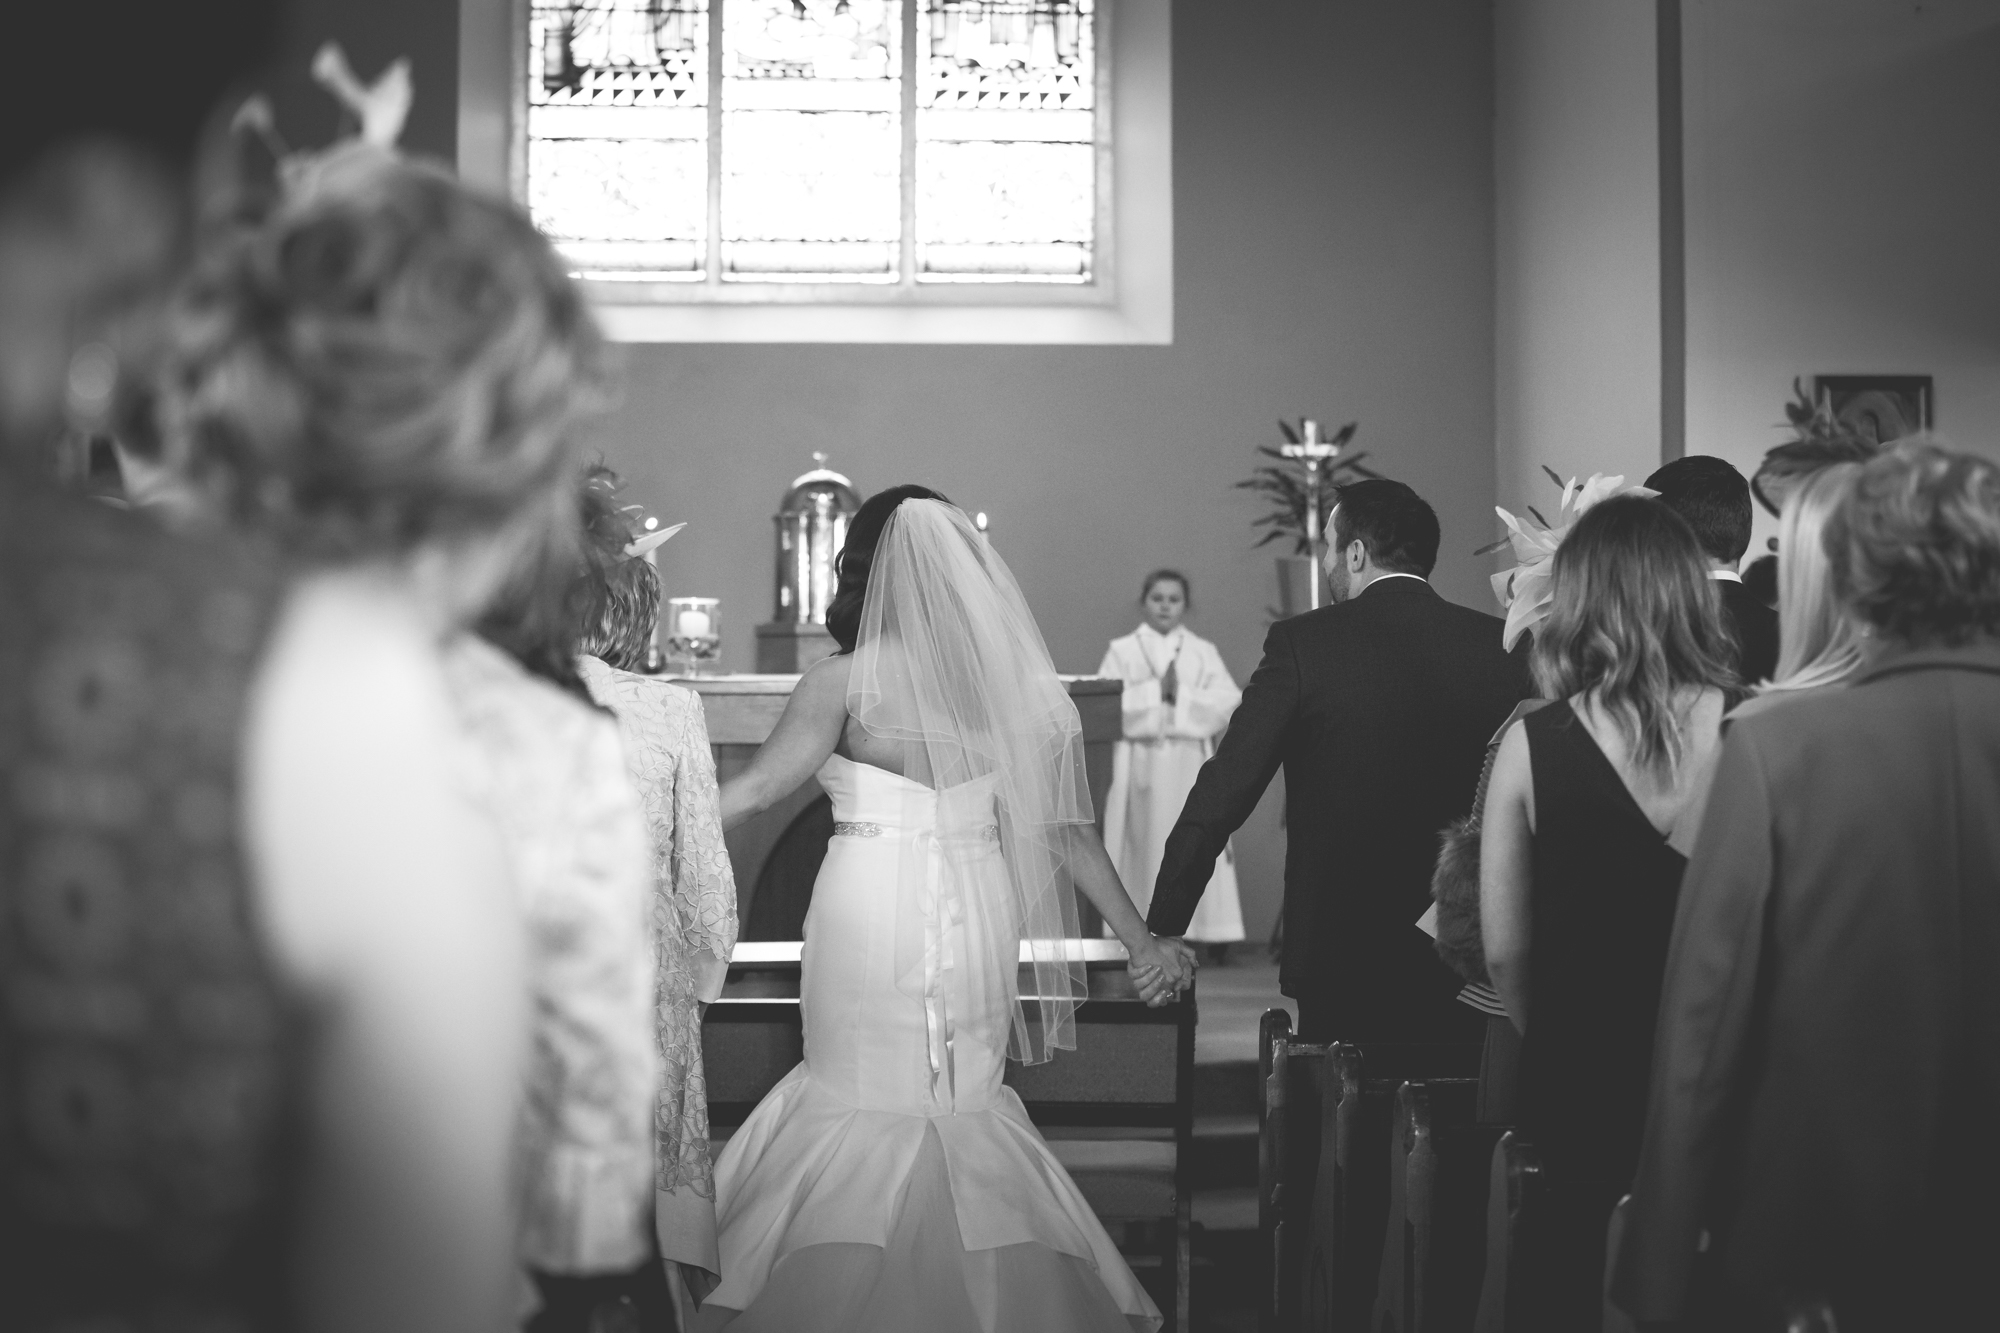 Francis&Oonagh-Ceremony-51.jpg